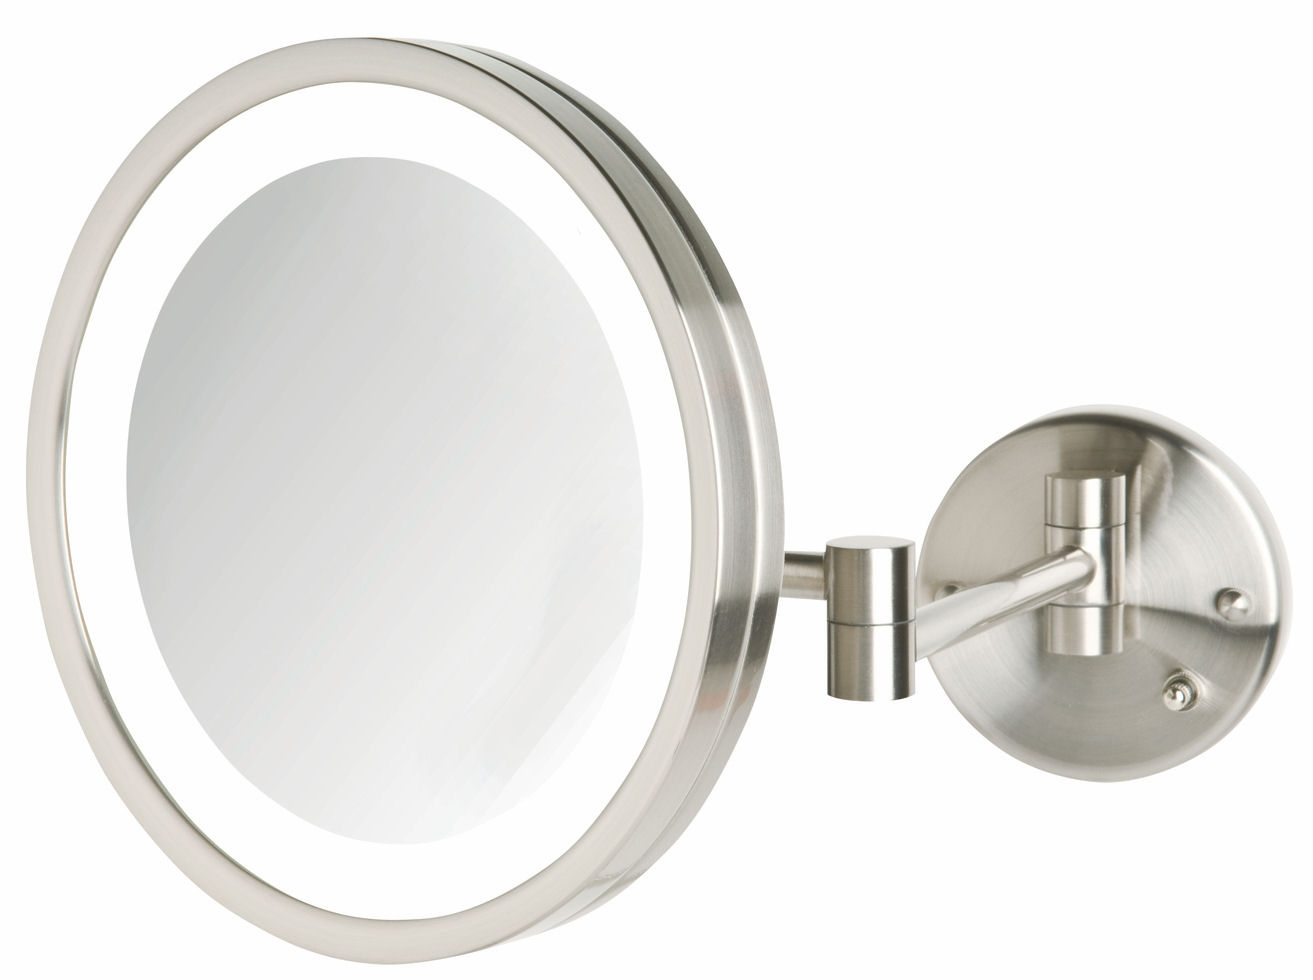 Permalink to Wall Mounted Magnifying Vanity Mirror